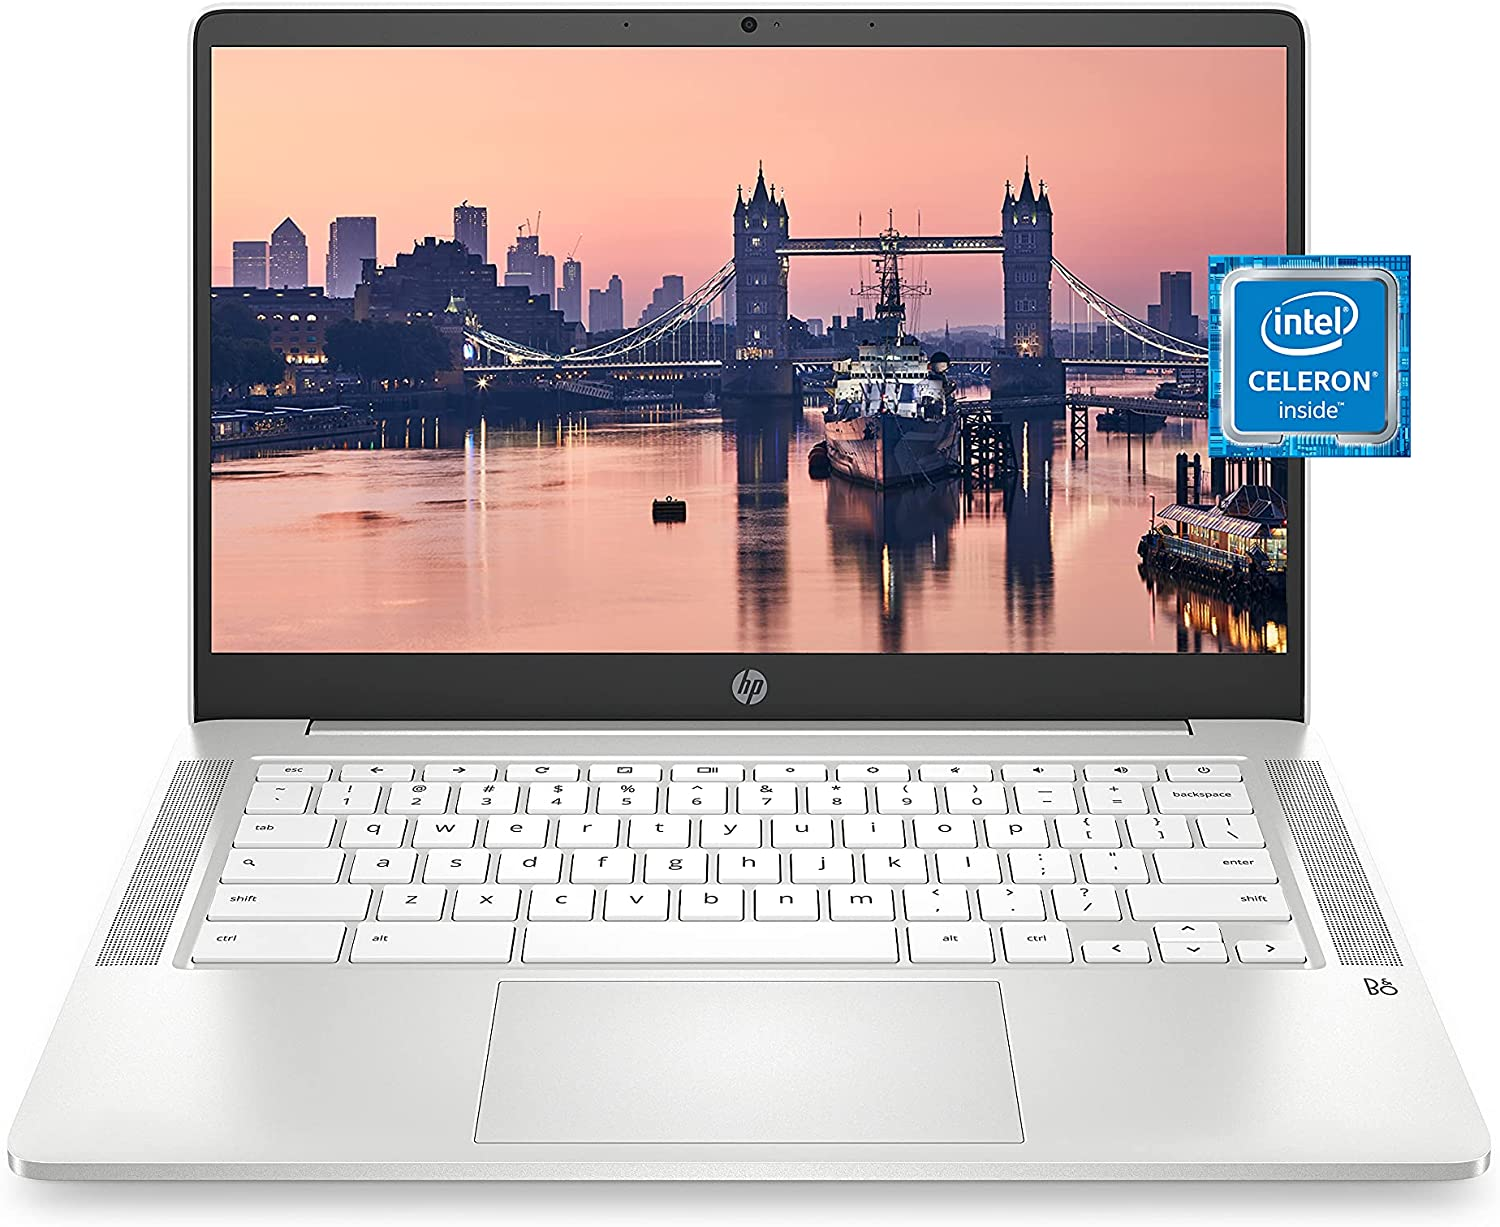 Best laptops for engineering student